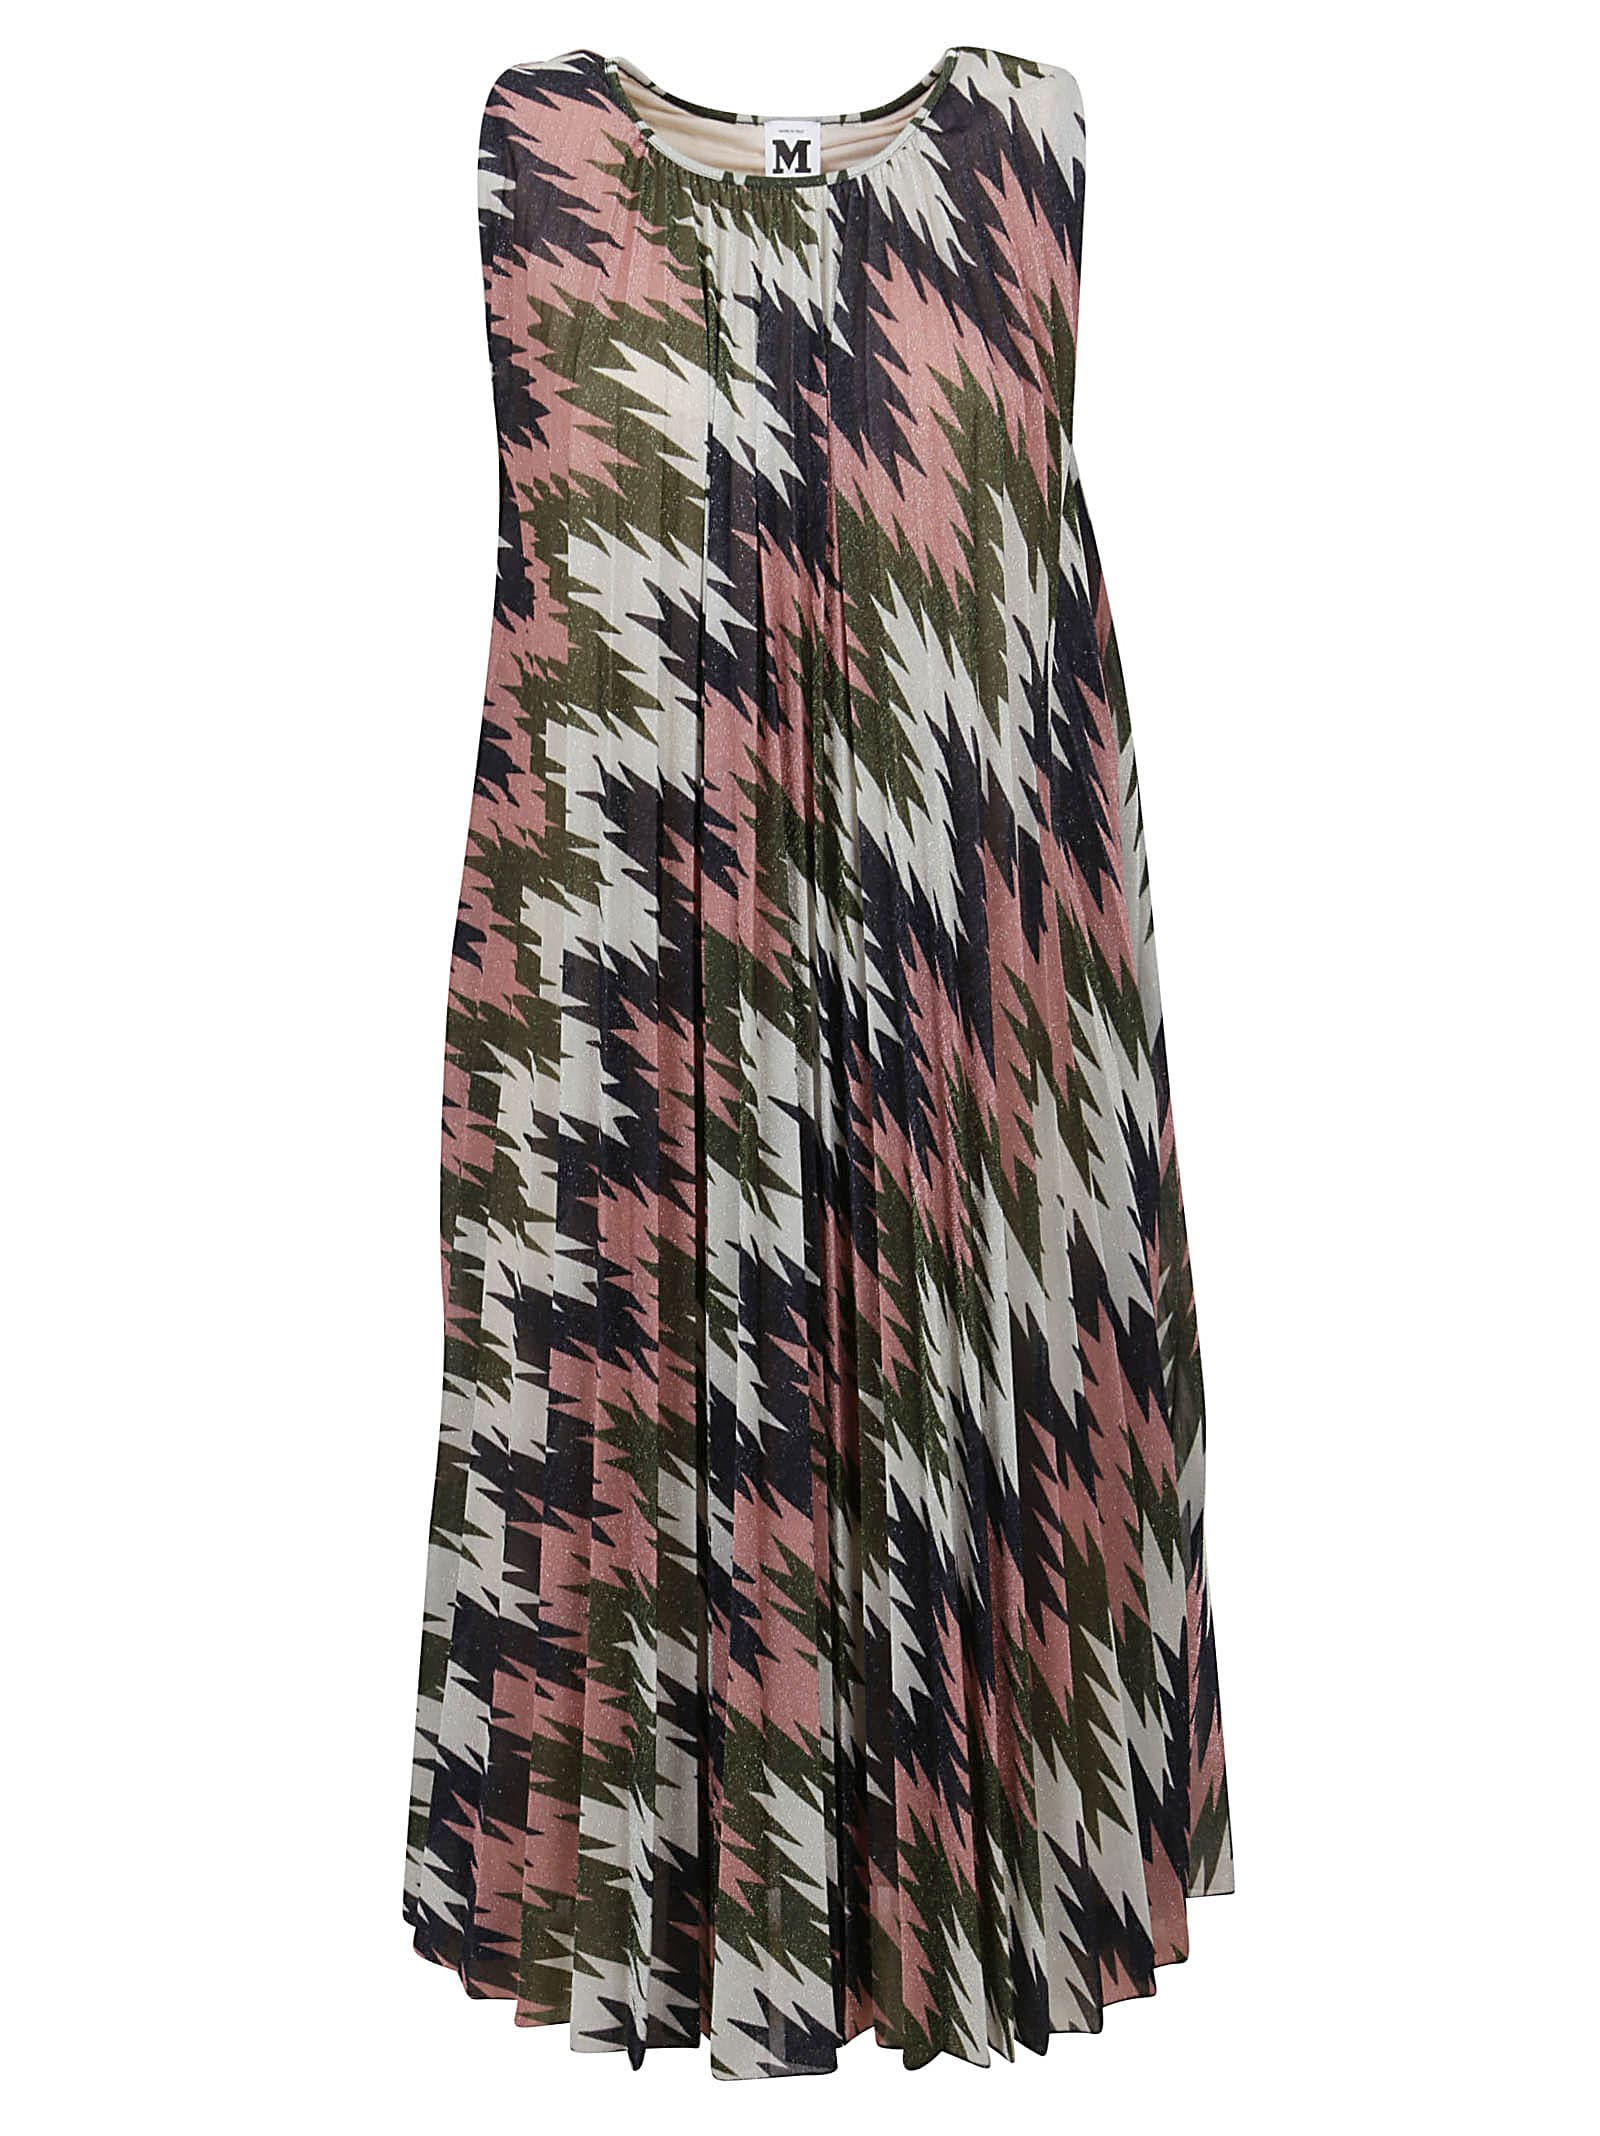 Patterned Lurex Dress